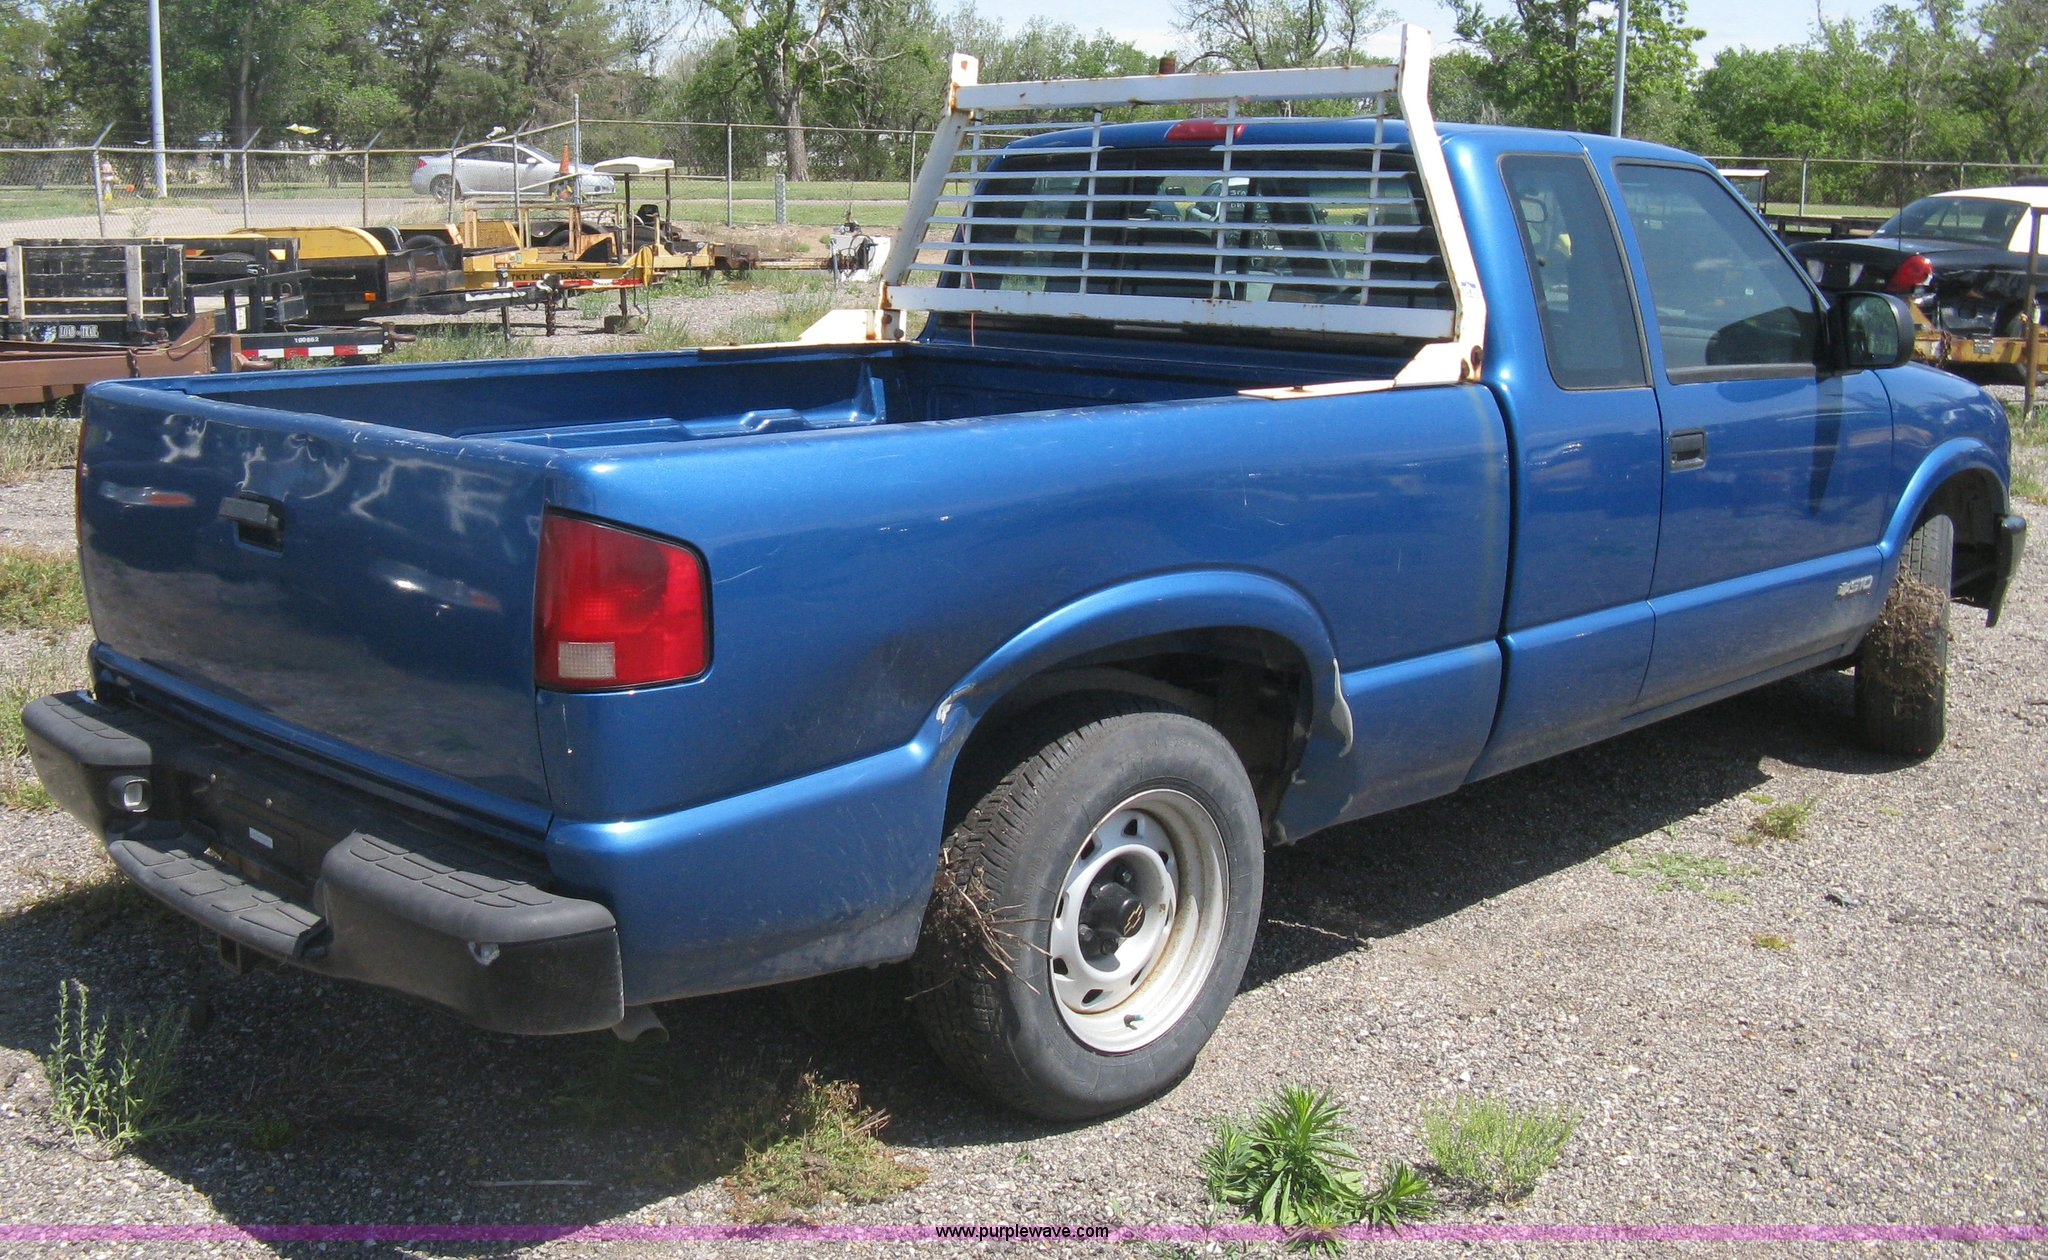 2001 Chevy S10 Ext Cab Pickup Truck Item As9220 Sold J Headache Rack Full Size In New Window